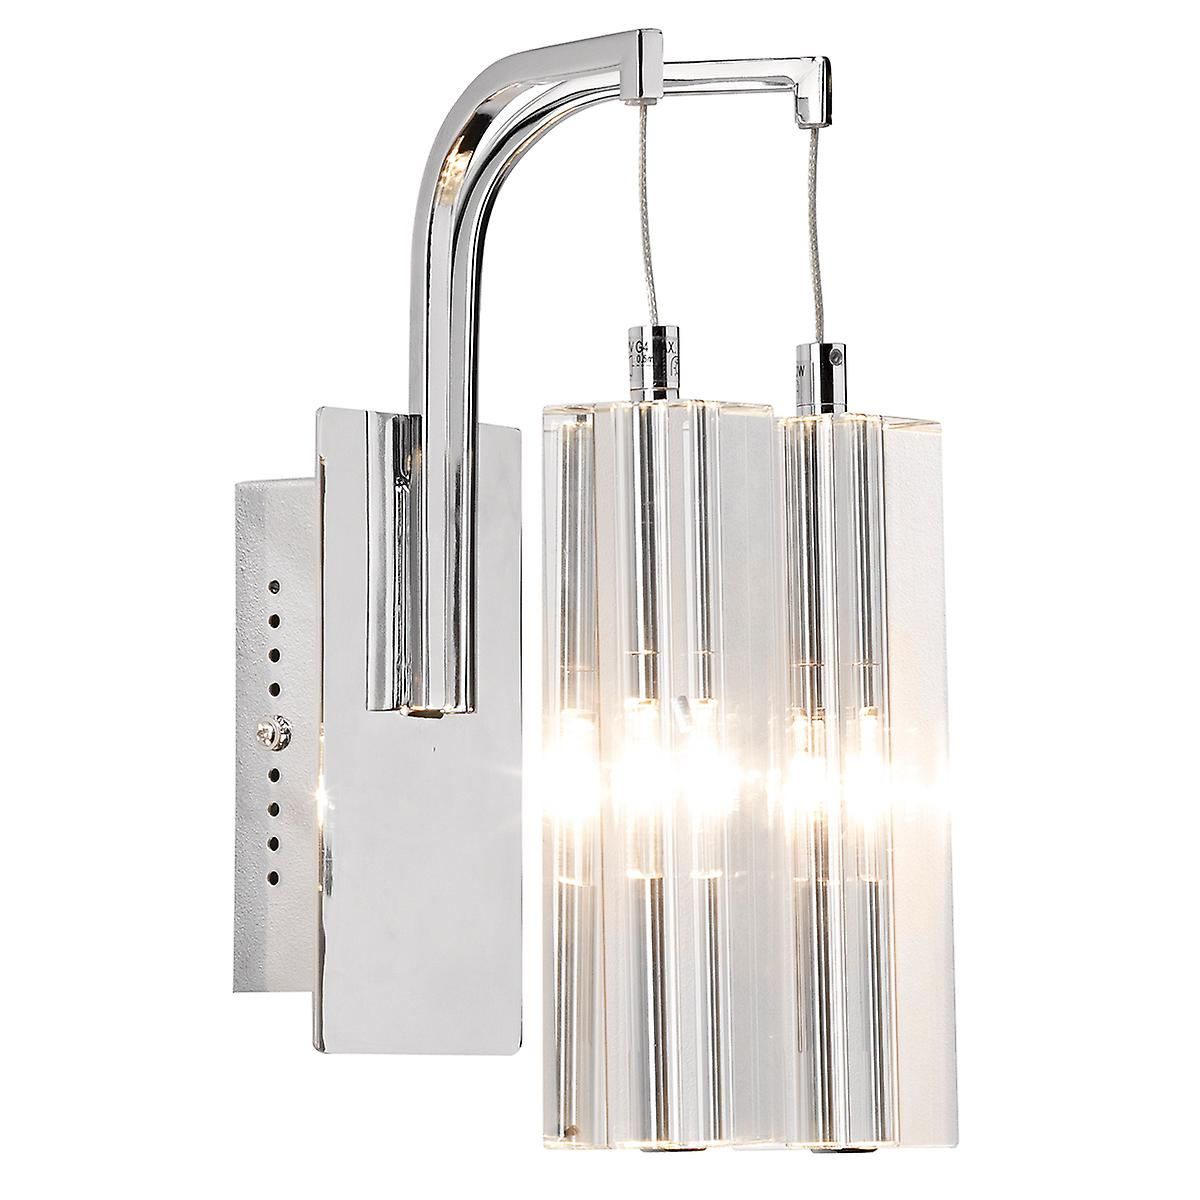 Dar GAL0950 Galileo Double Insulated Twin Halogen Crystal Wall Light